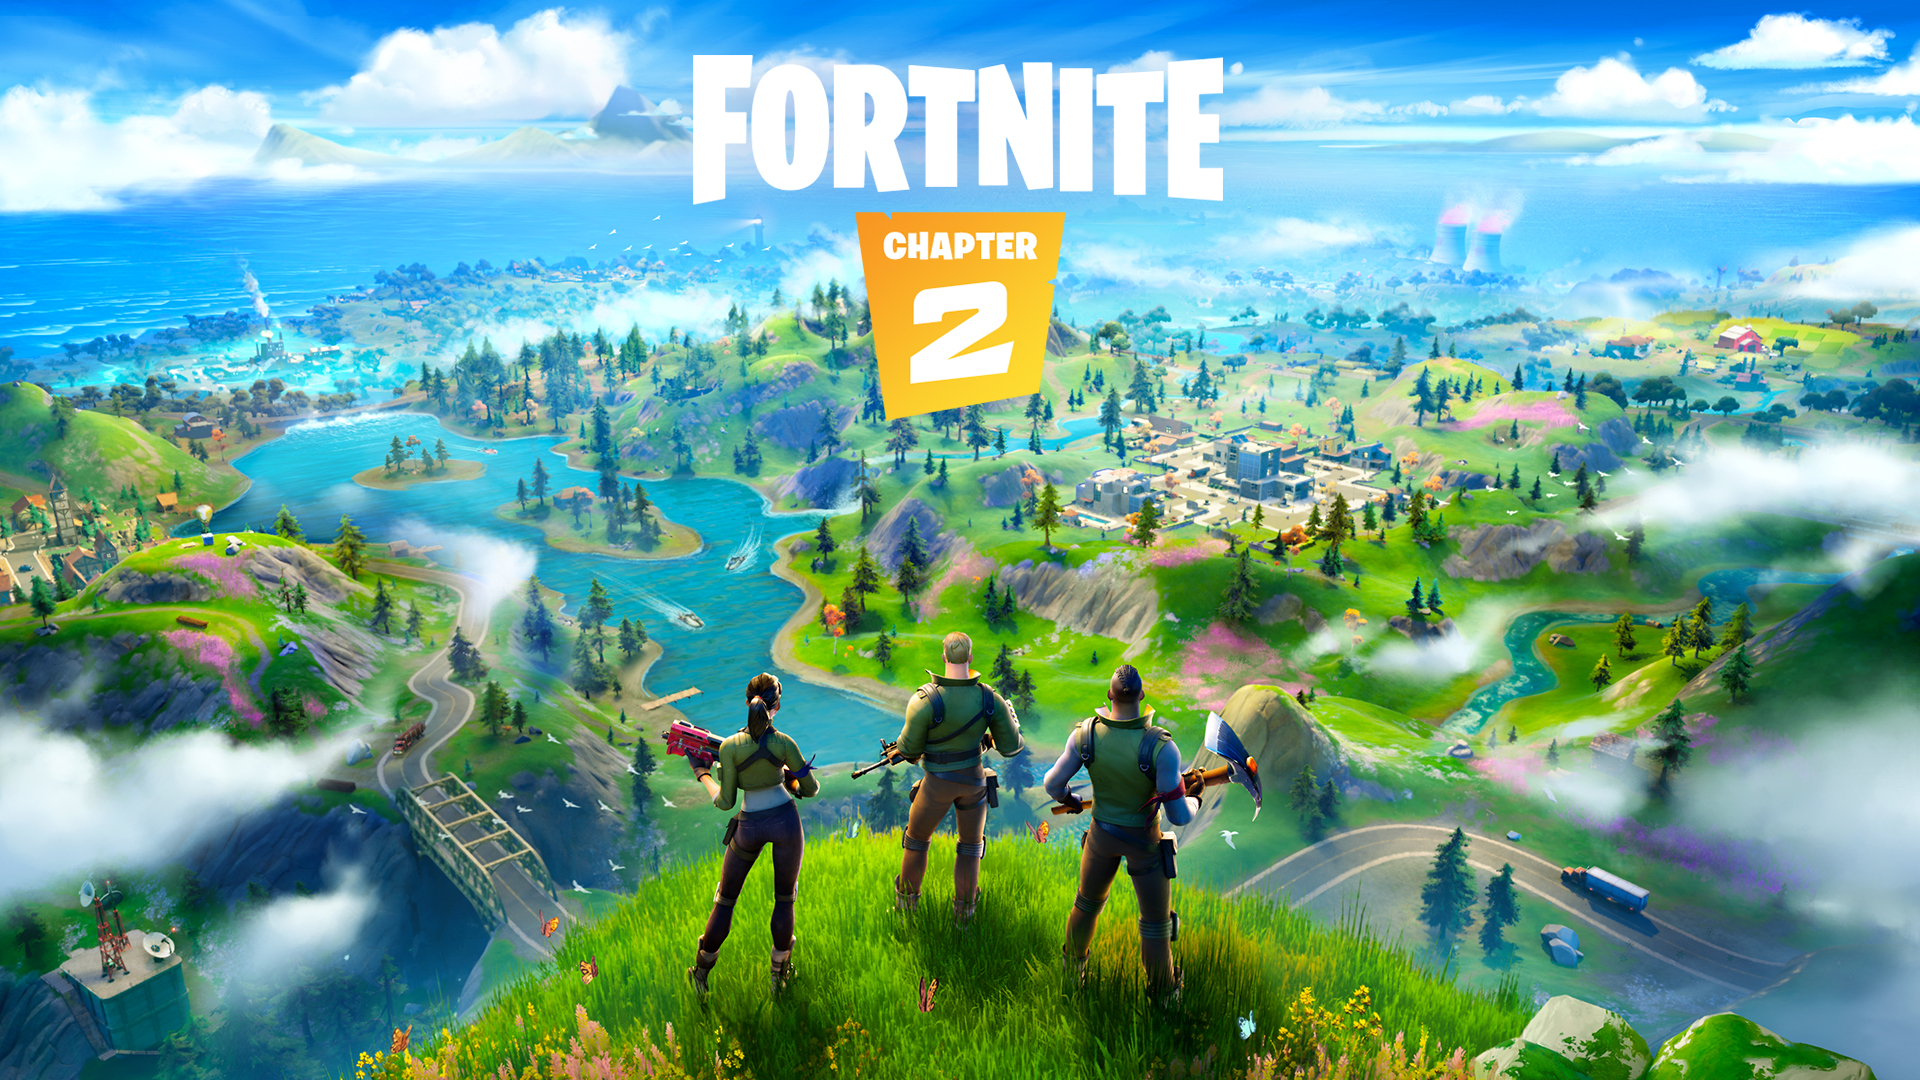 Fortnite Chapter 2 is now available